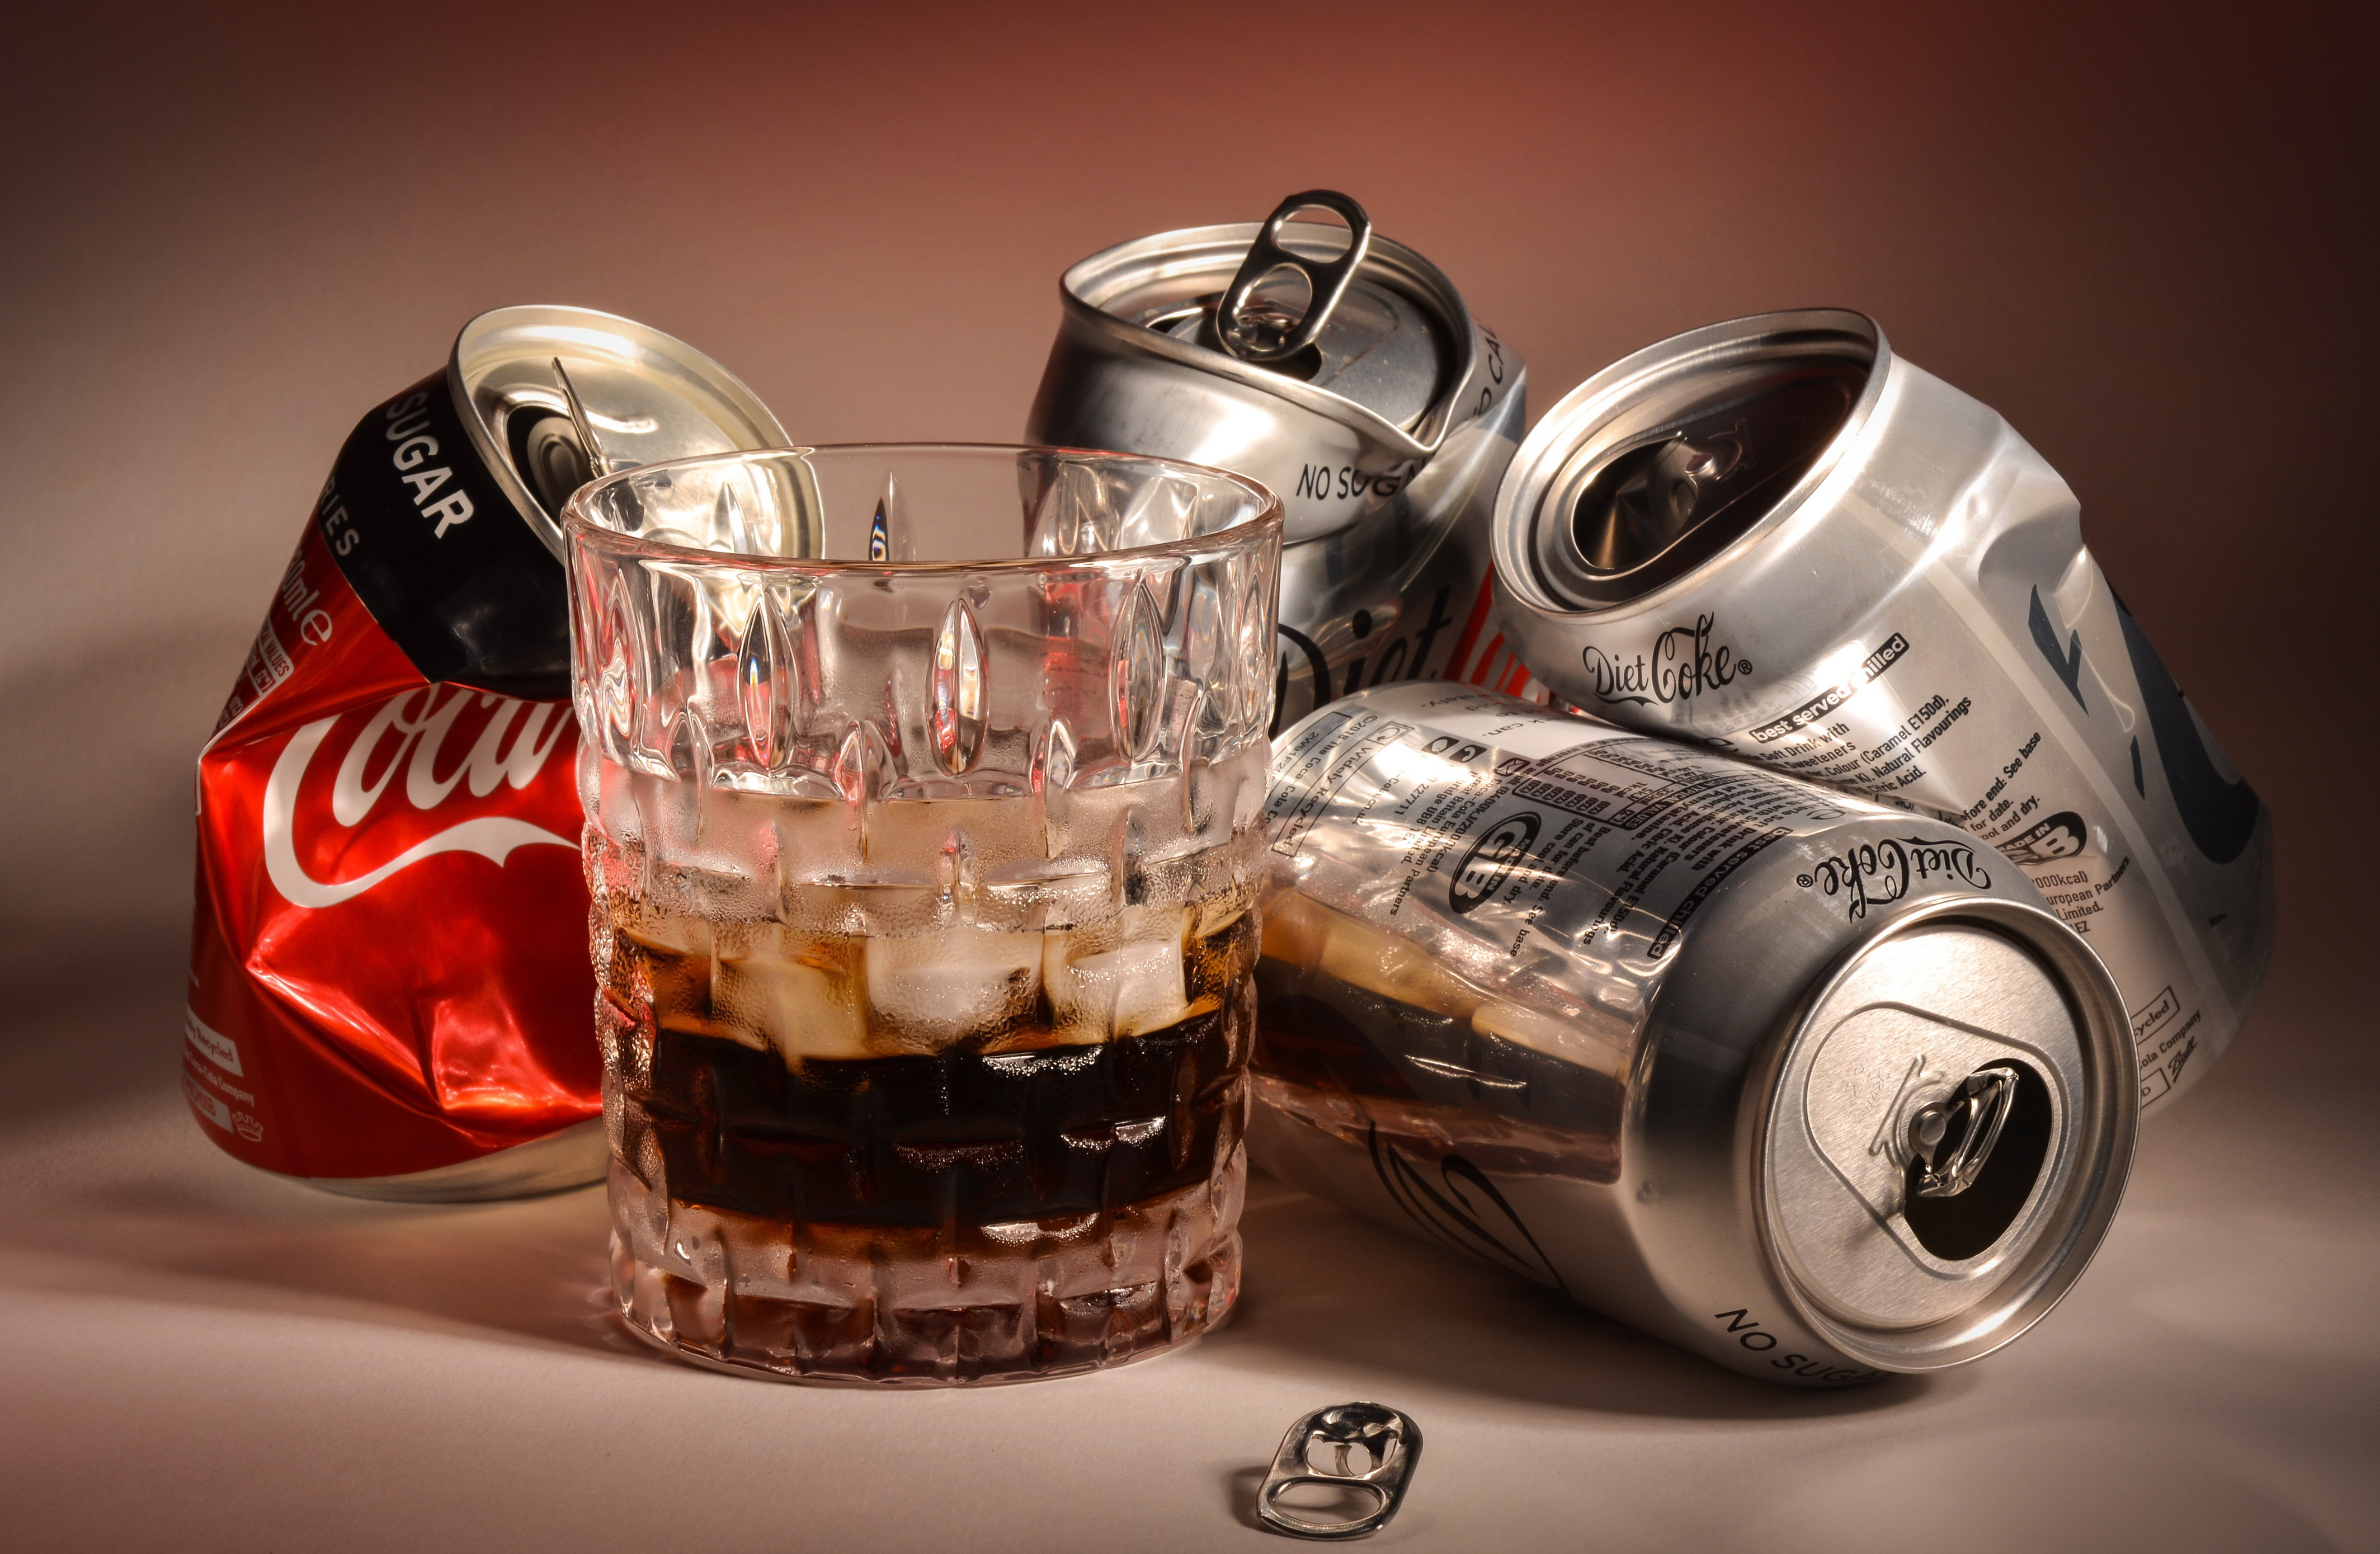 Images Coca-Cola tin can Highball glass Food Drinks 4255x2778 drink